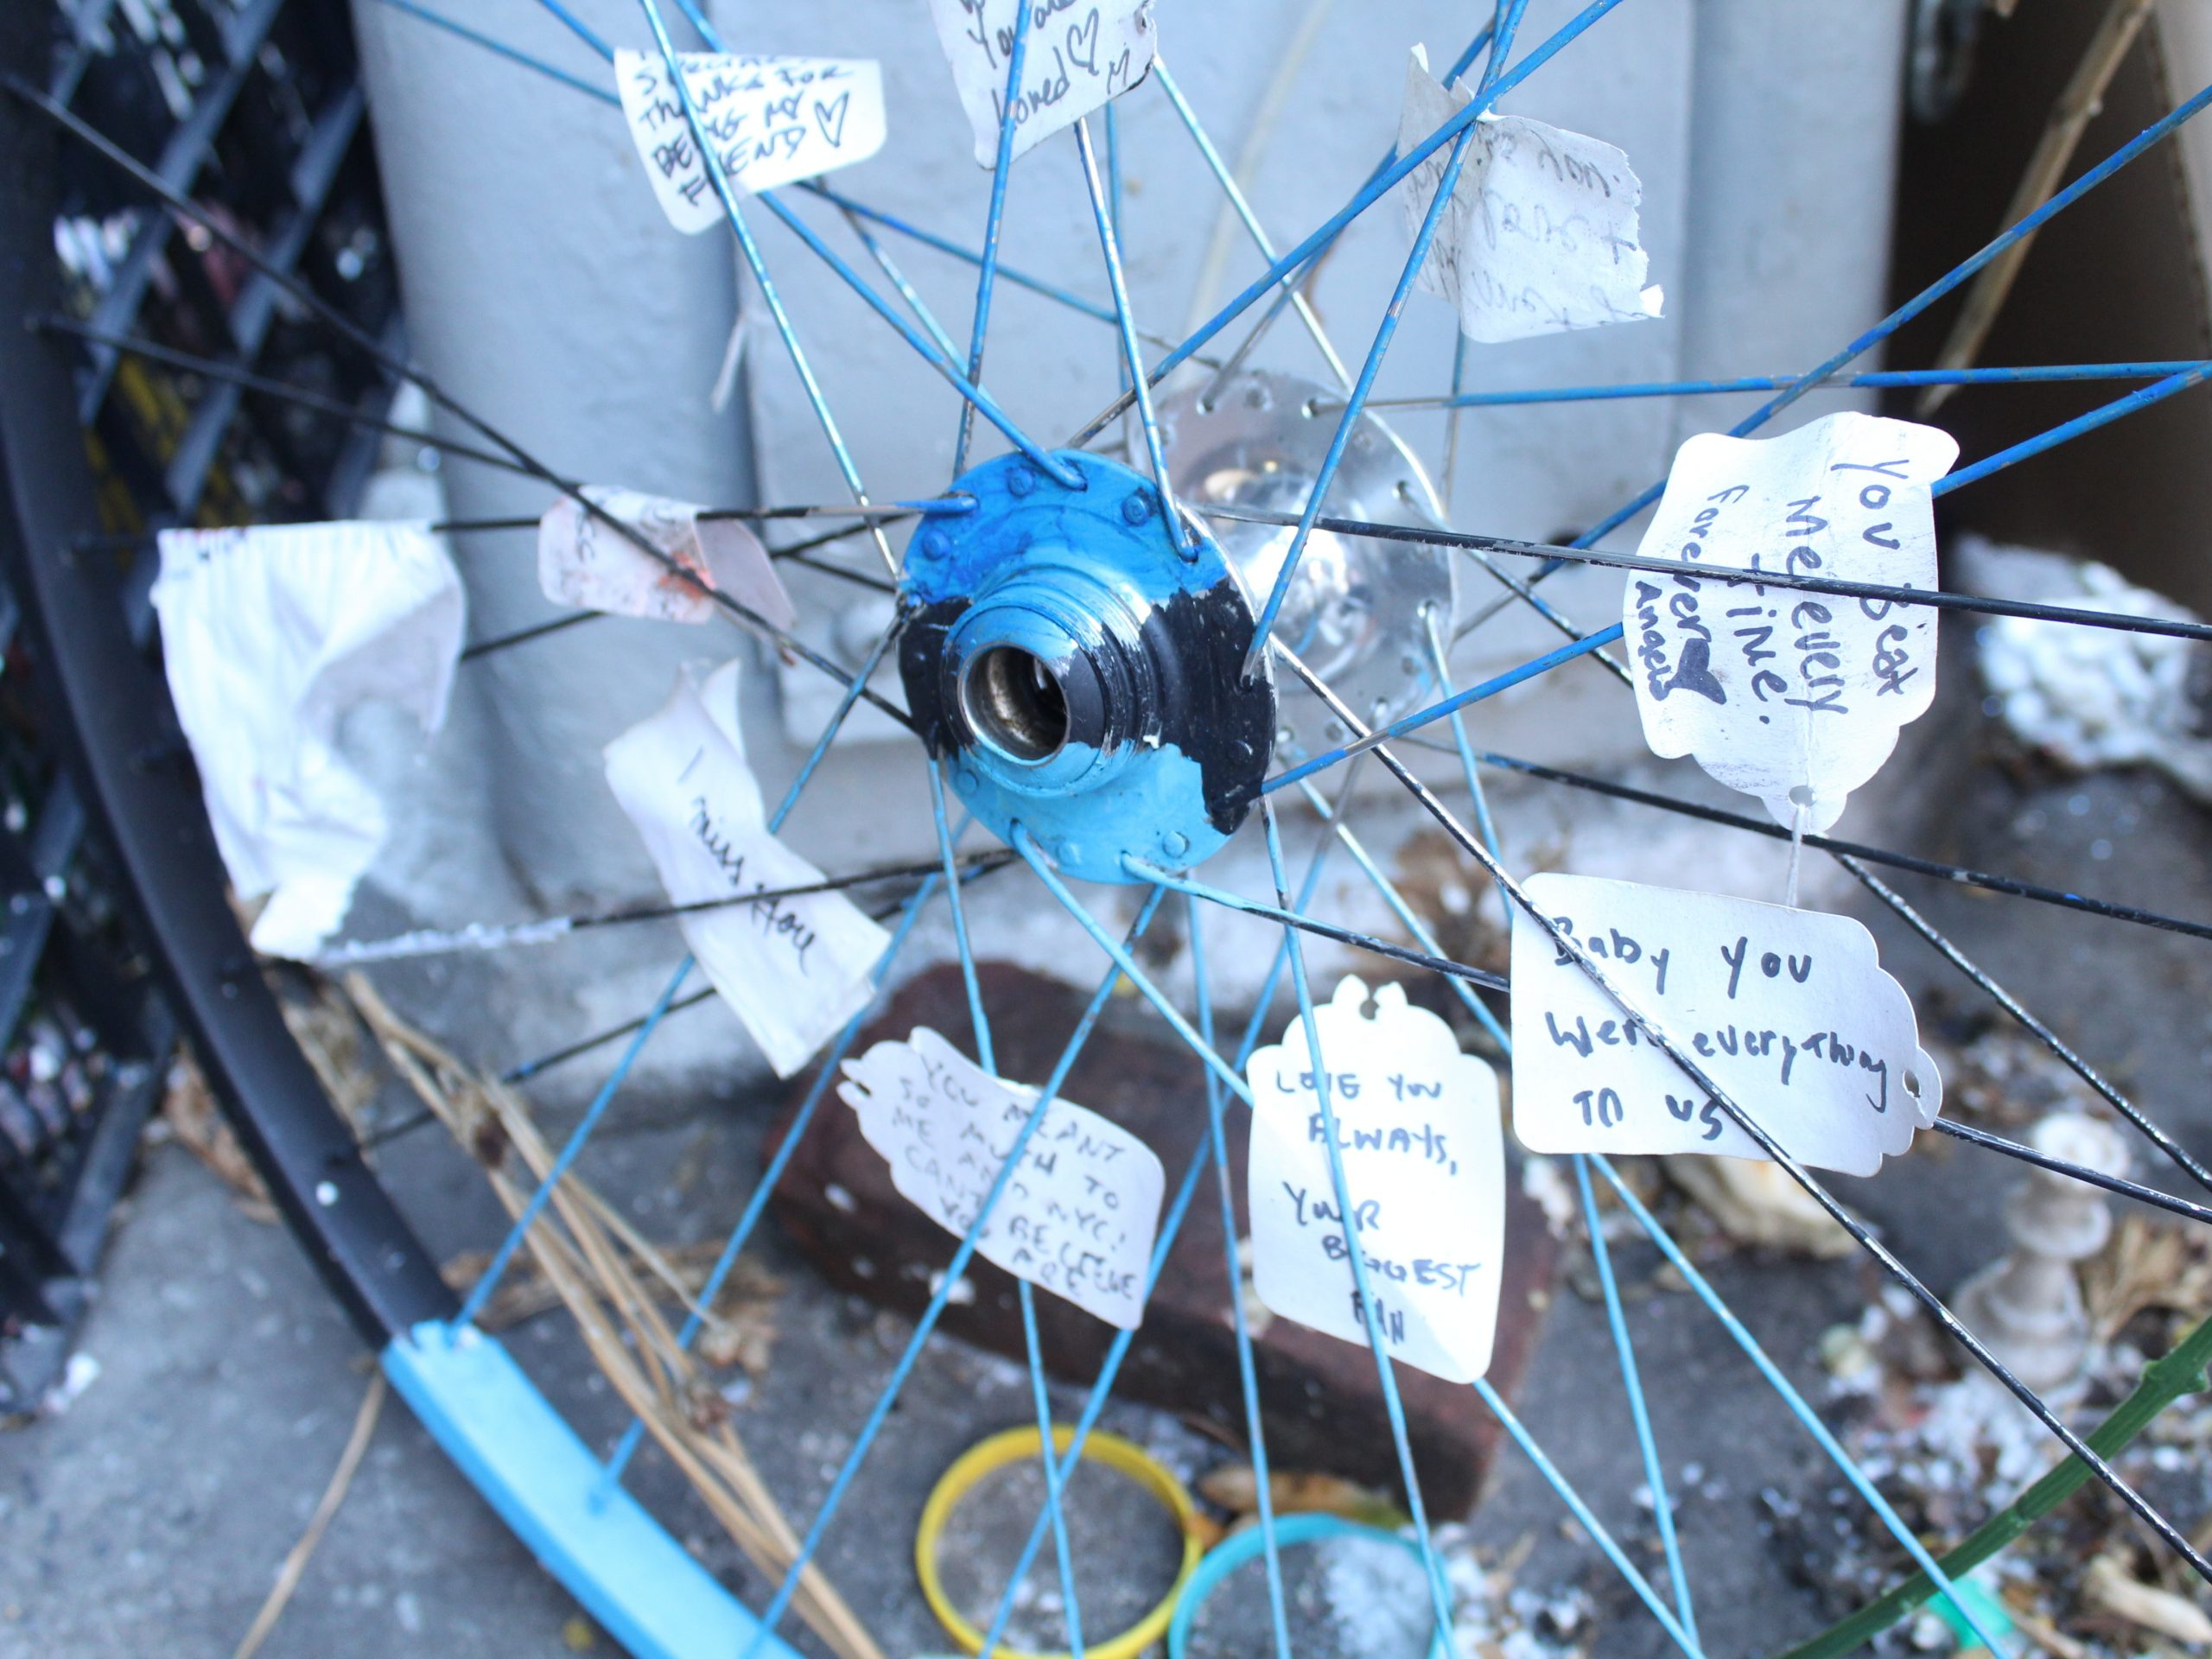 A memorial site in Manhattan, where Robyn Hightman, a bike messenger was hit and killed by a truck this summer. People have tucked messages of support in the spokes of a bike wheel.